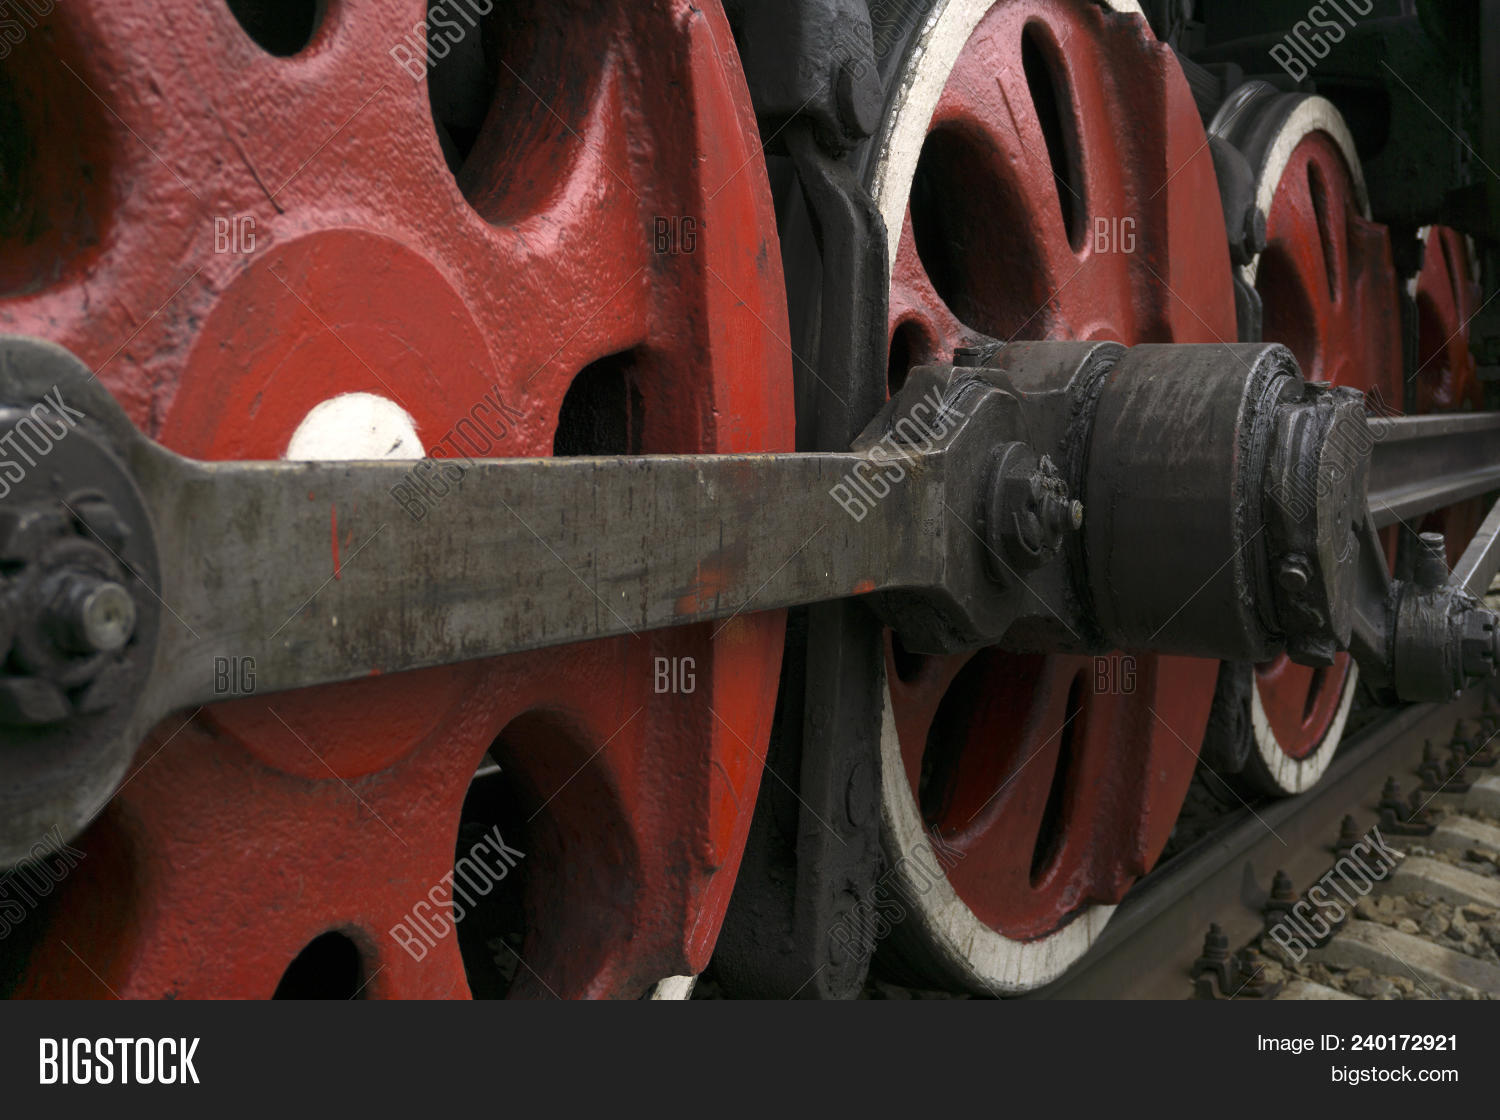 🔥 Wheels Of An Old Functioning Steam Locomotive With